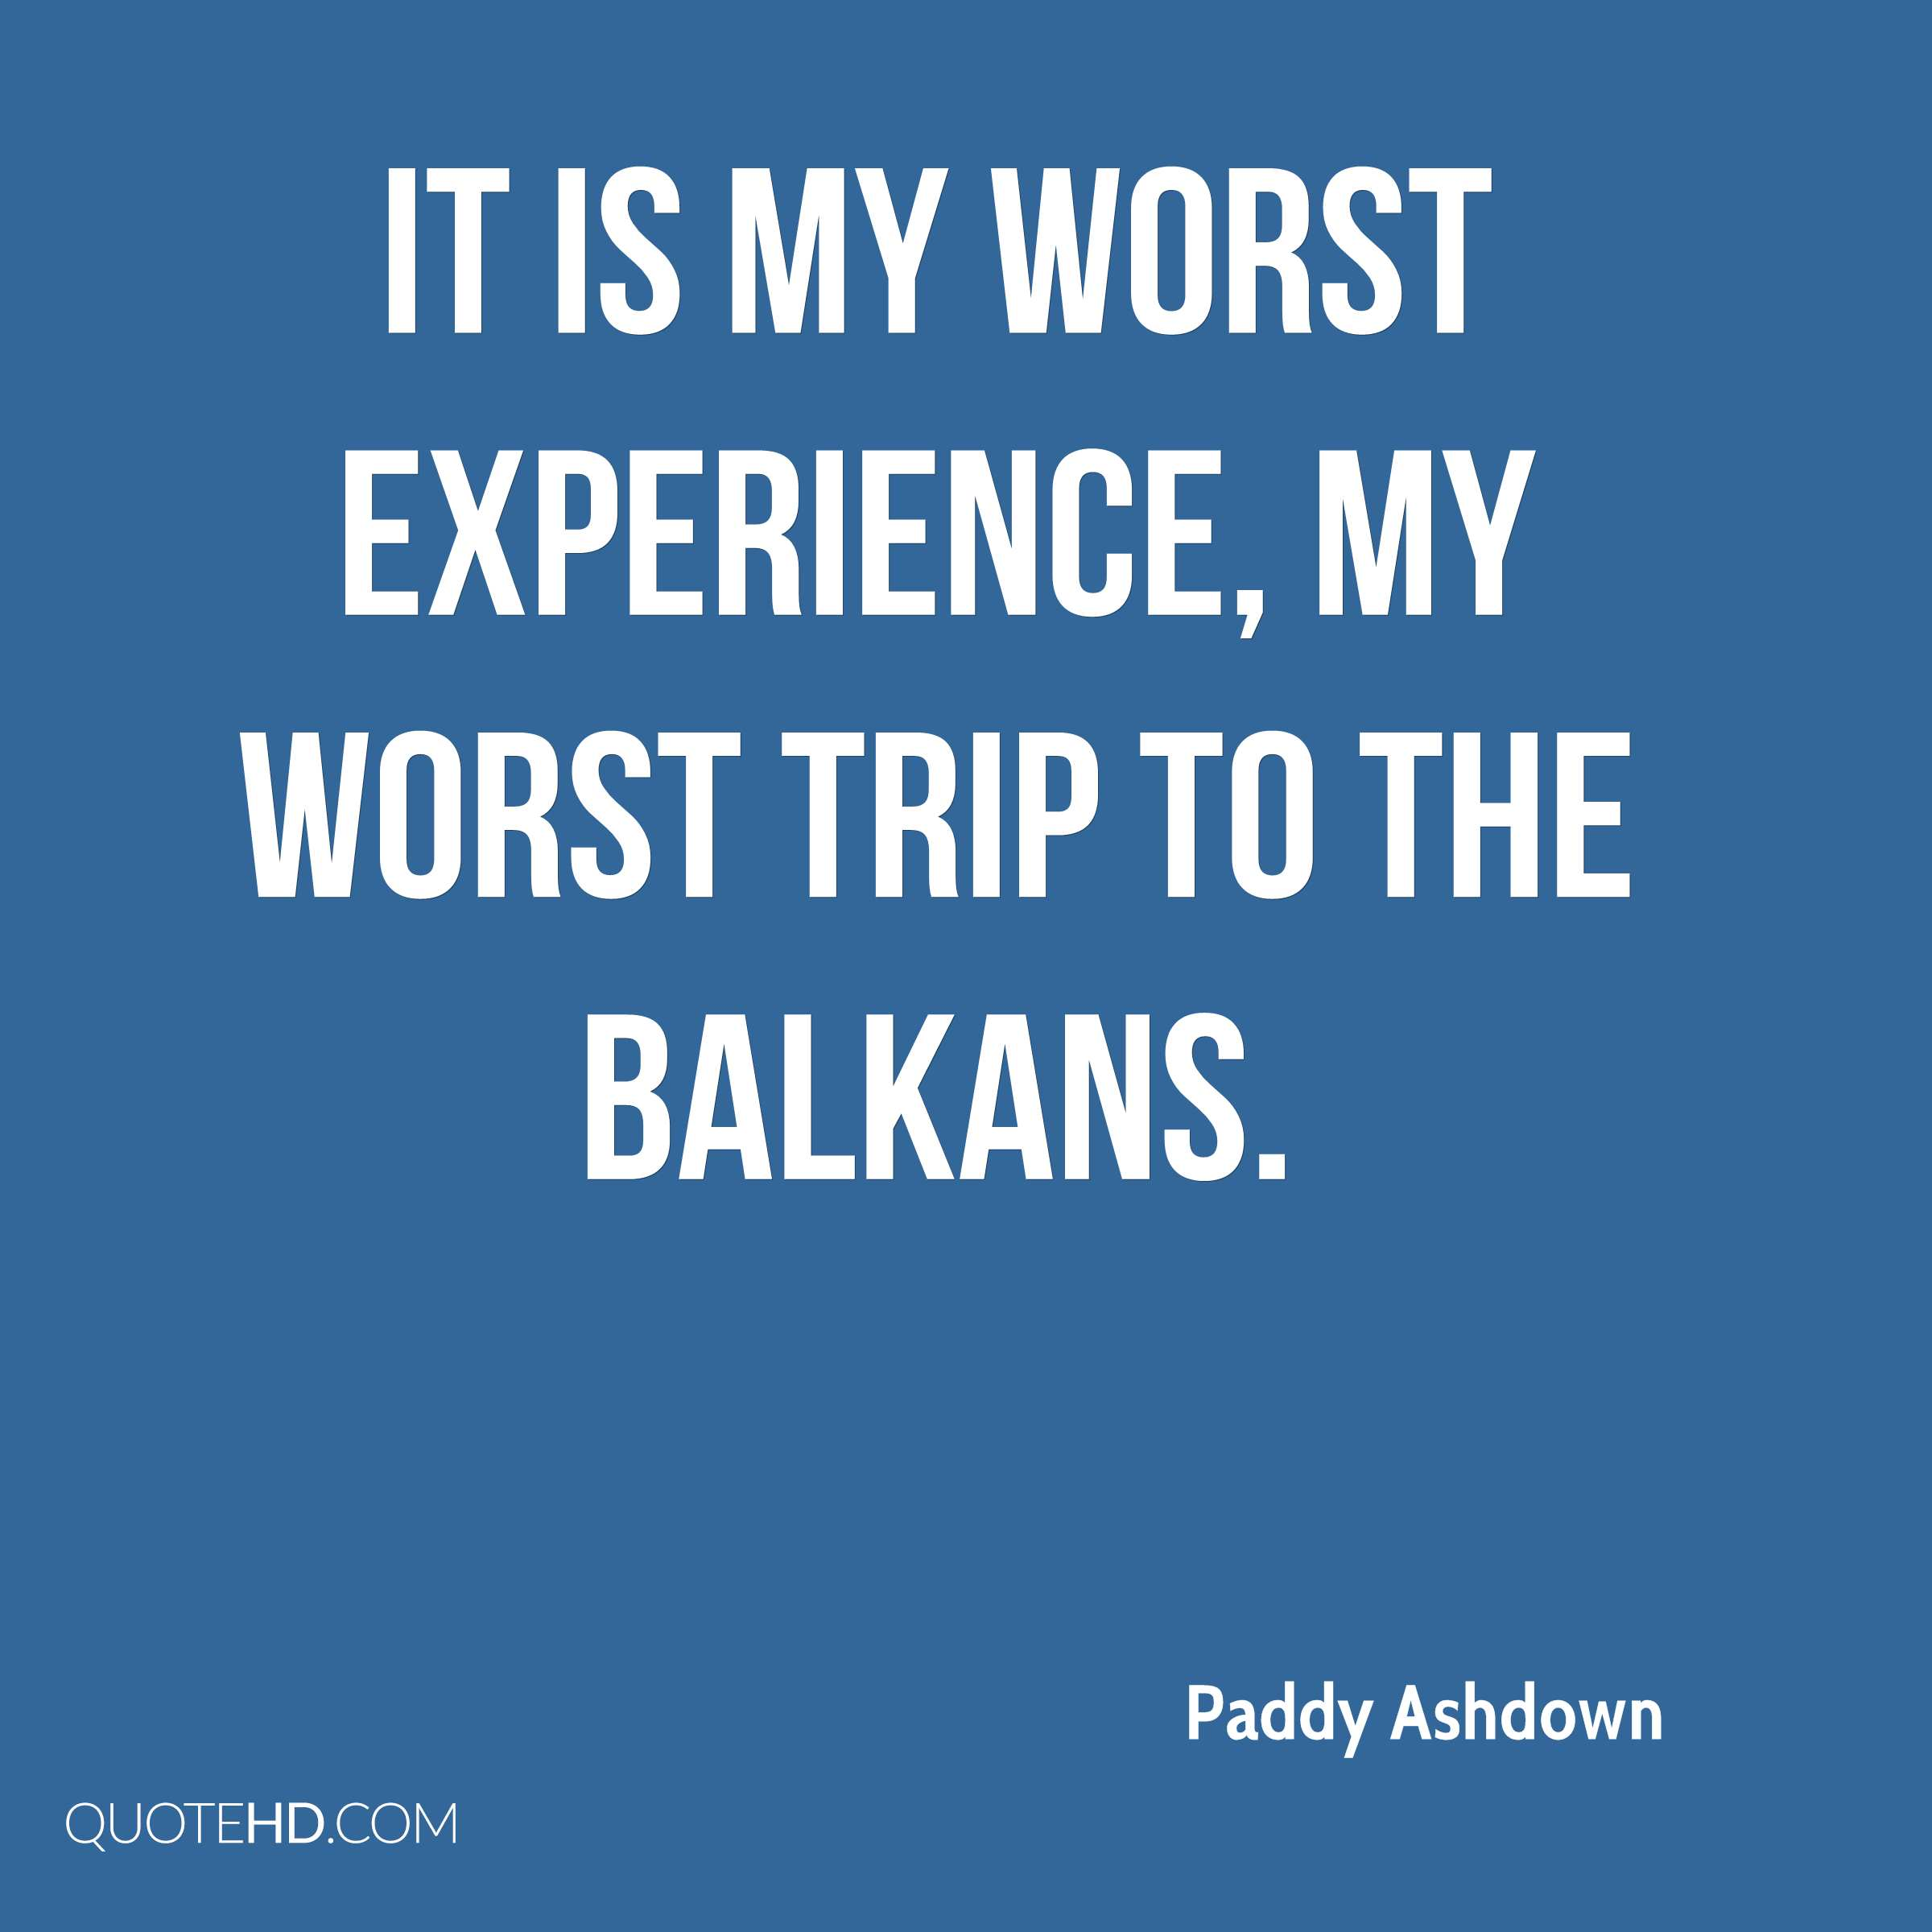 It is my worst experience, my worst trip to the Balkans.